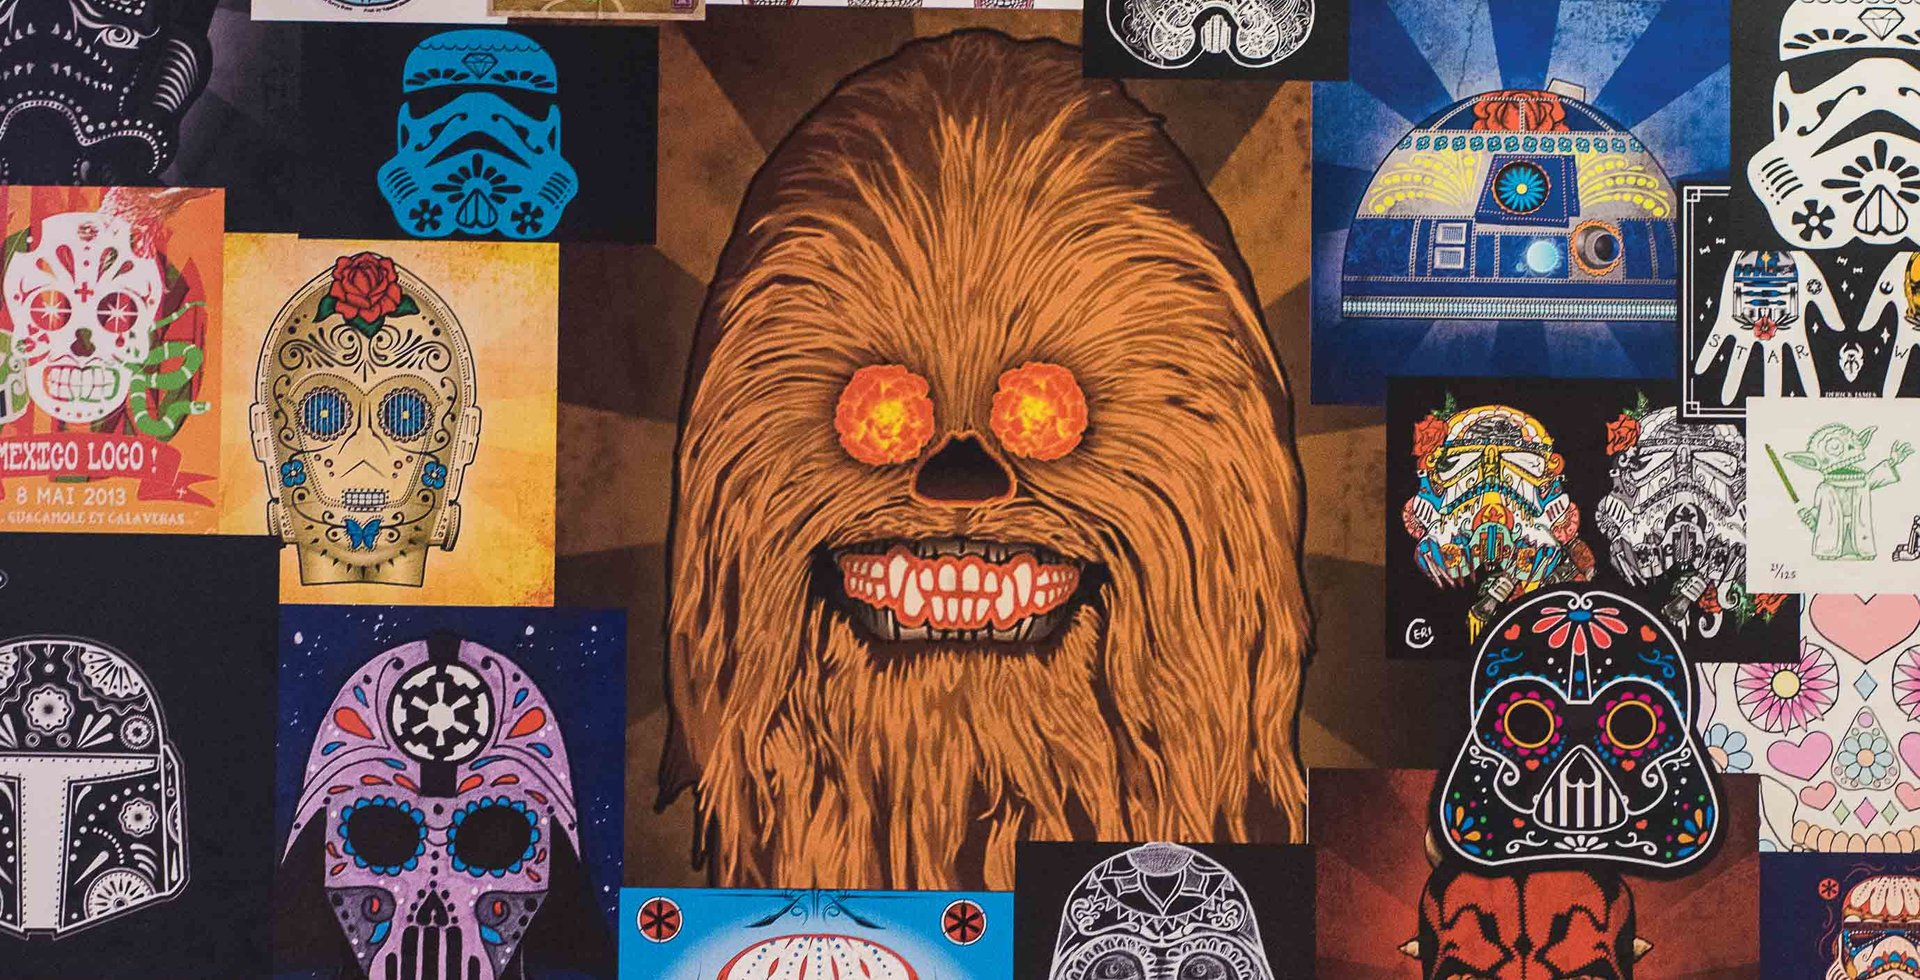 Mexican cantina meets Star Wars. The wall art at Mags 99 has come a long way since the original, solo fish poster, but the chicken has always been delicious.